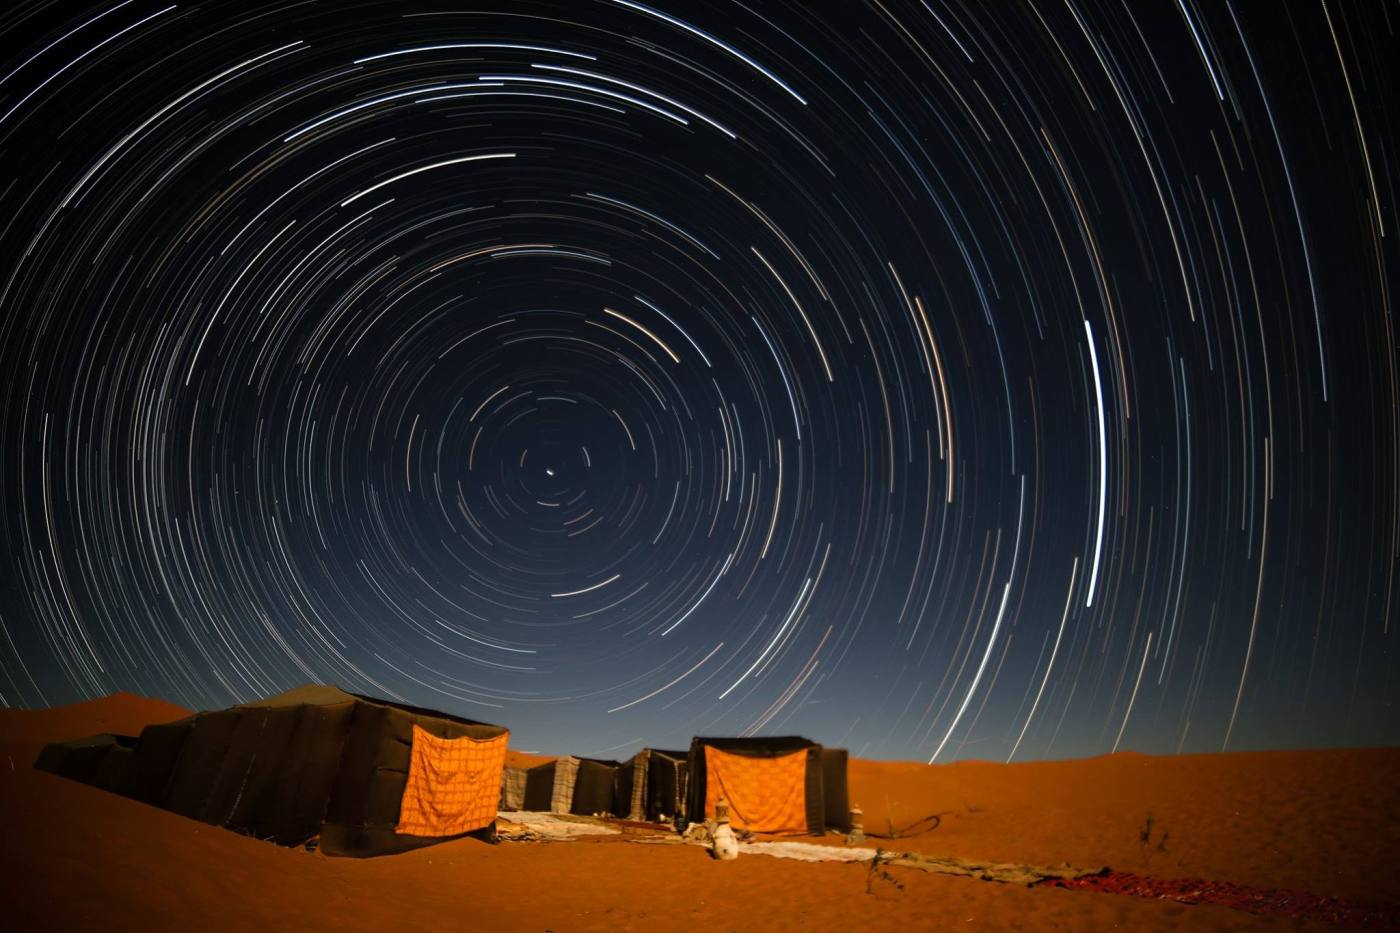 Stelle - star trails - sahara